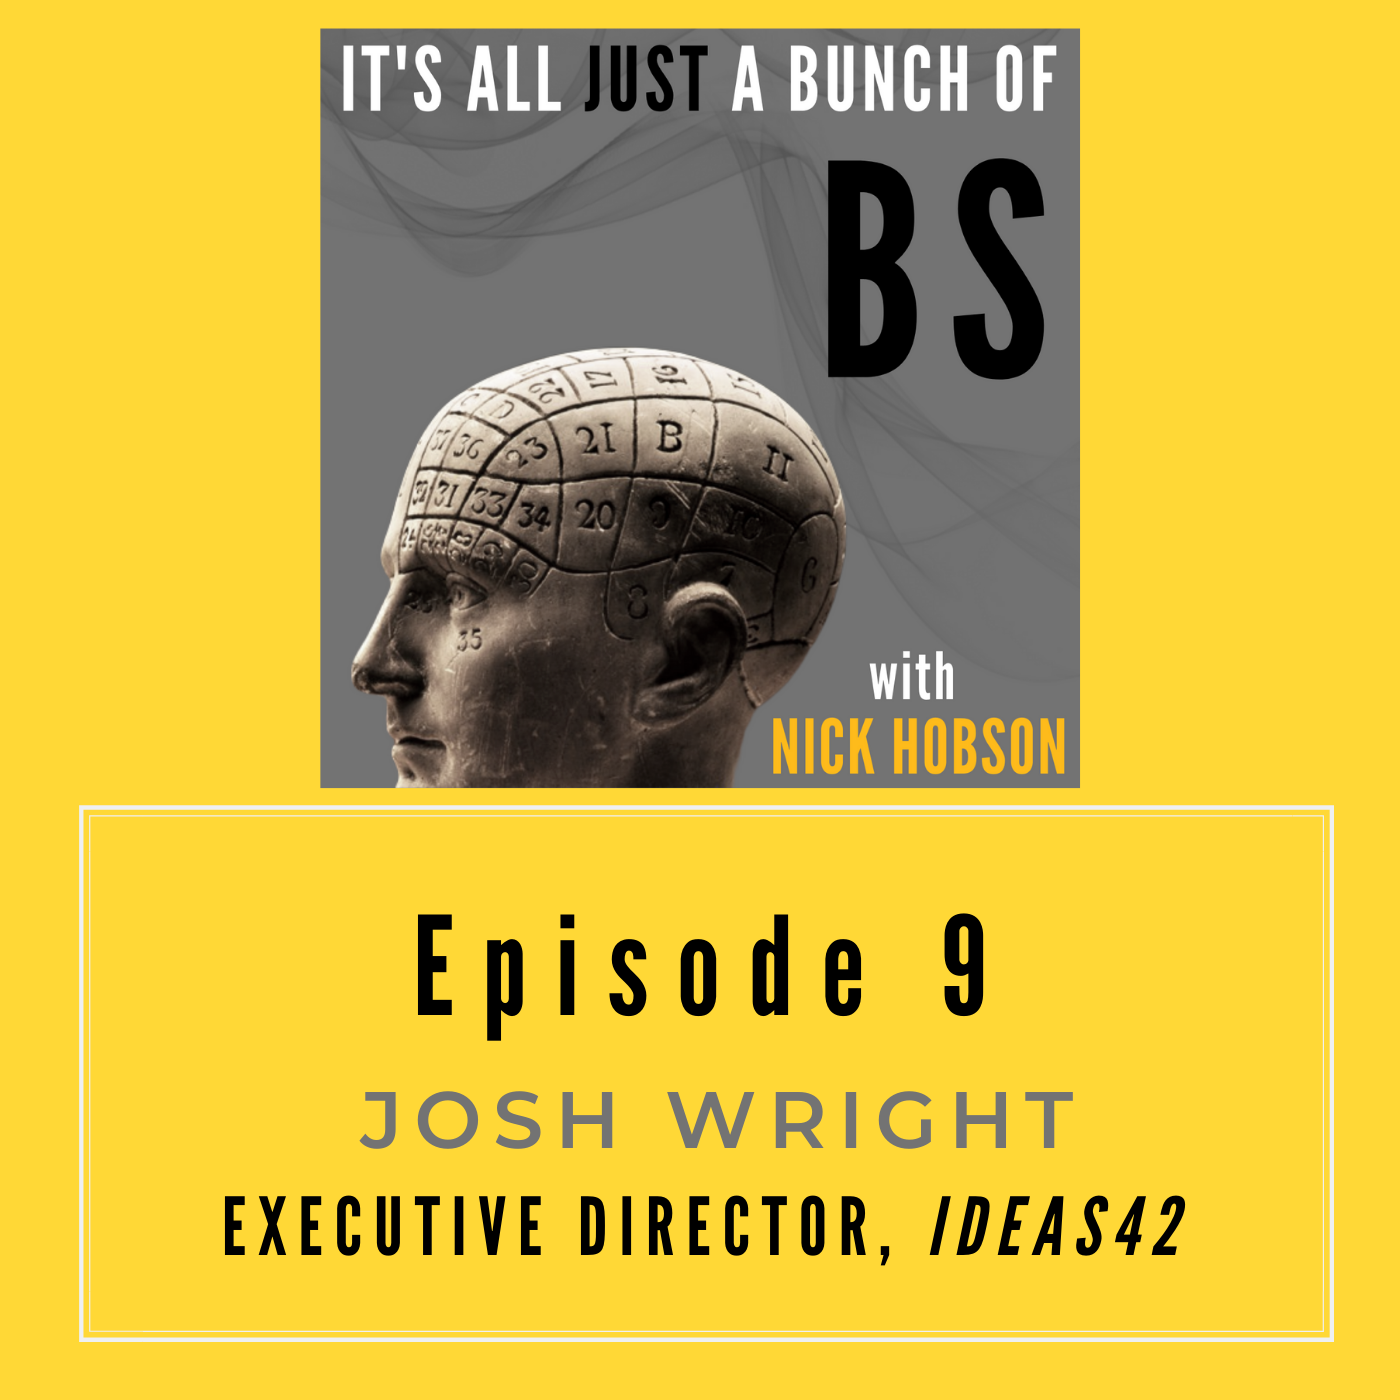 Episode 9 with JOSH WRIGHT: Diagnose Before Design